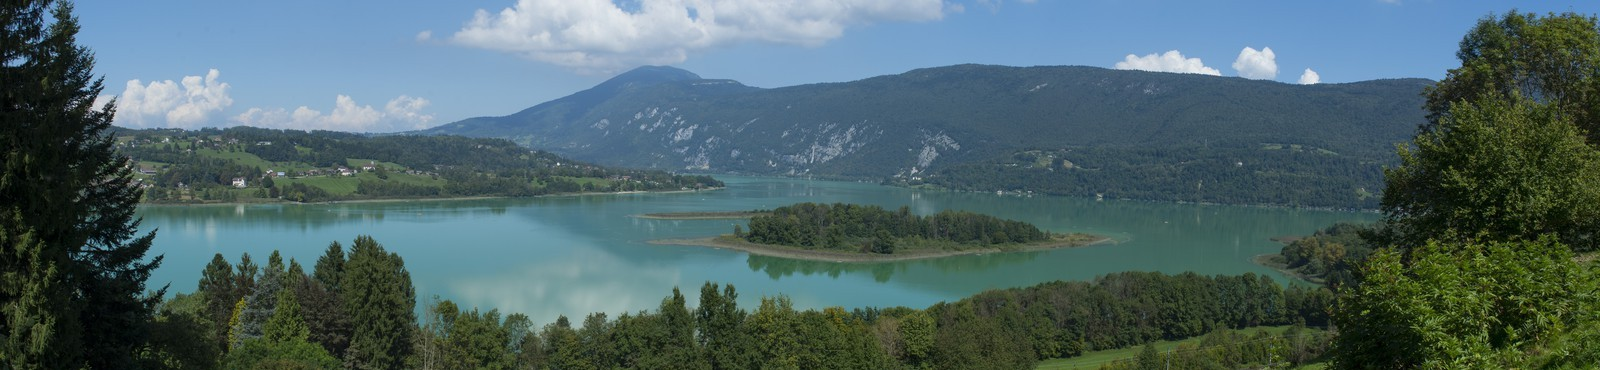 Panoramic Aiguebelette Lake